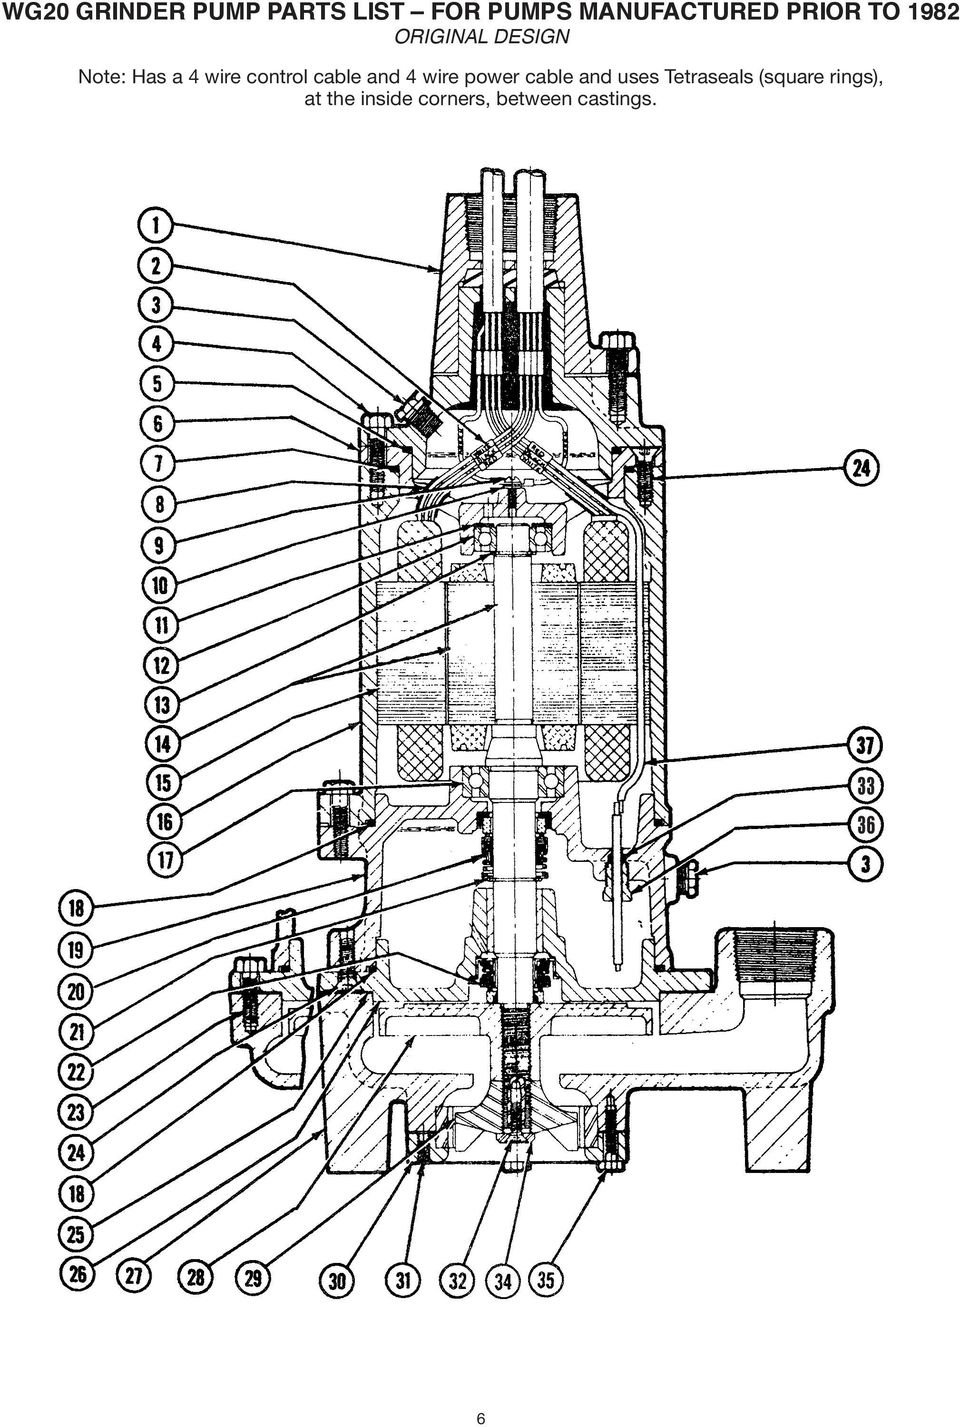 Models Wg Wgx20 Grinder Pump Used In Hazardous Locations Class I Mini Wiring Diagram Control Cable And 4 Wire Power Uses